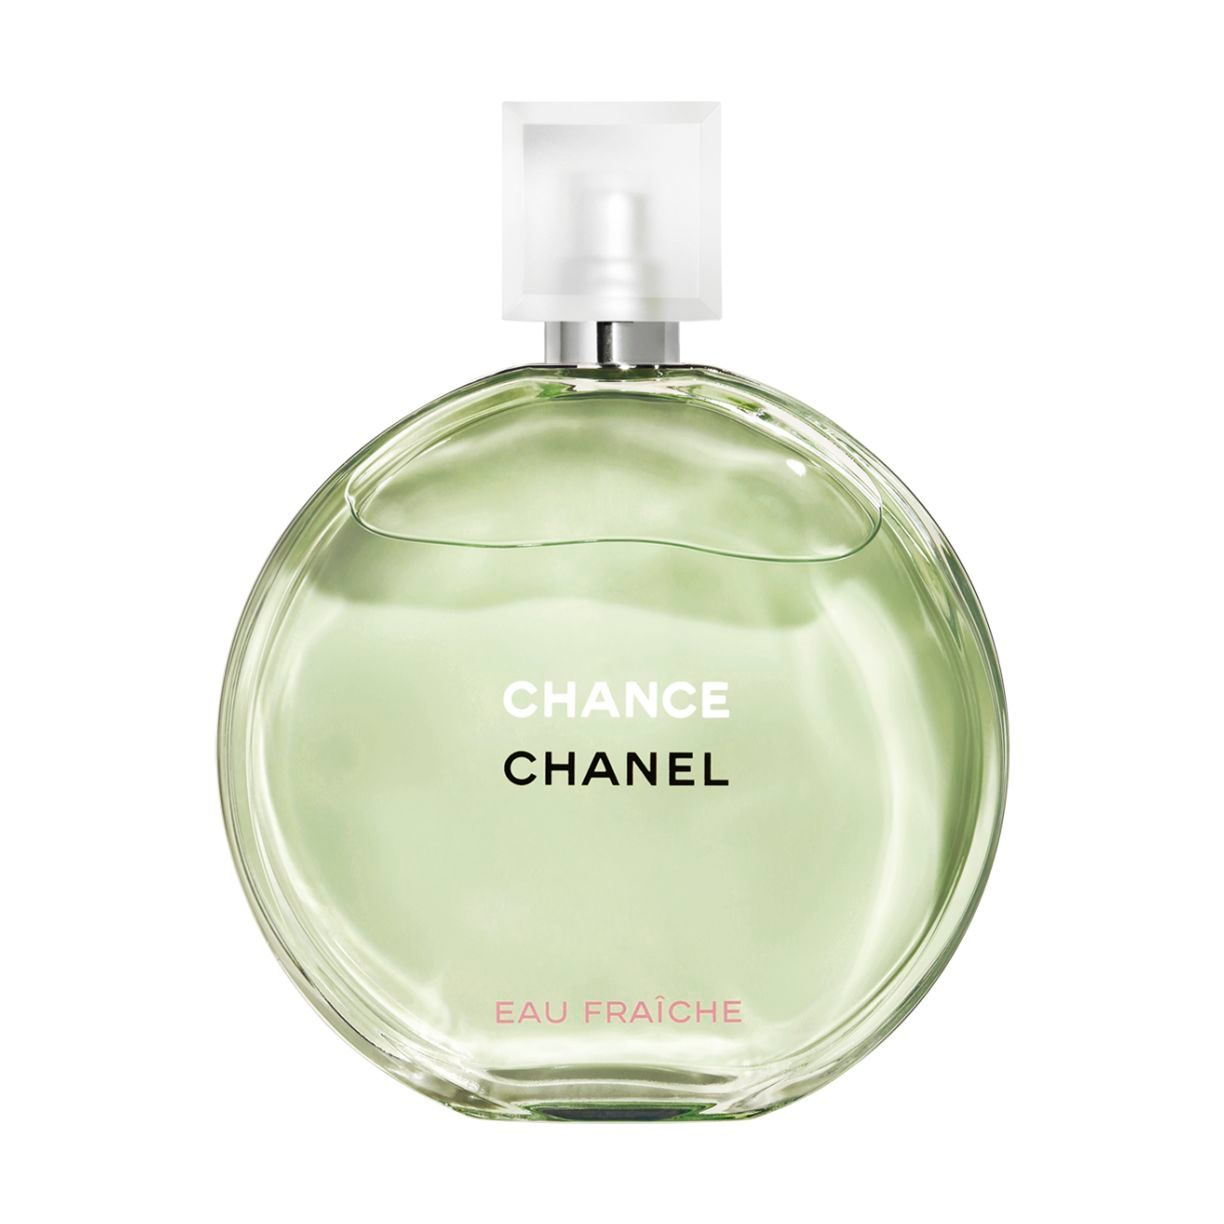 CHANCE EAU FRAICHE EAU DE TOILETTE SPRAY 50ml